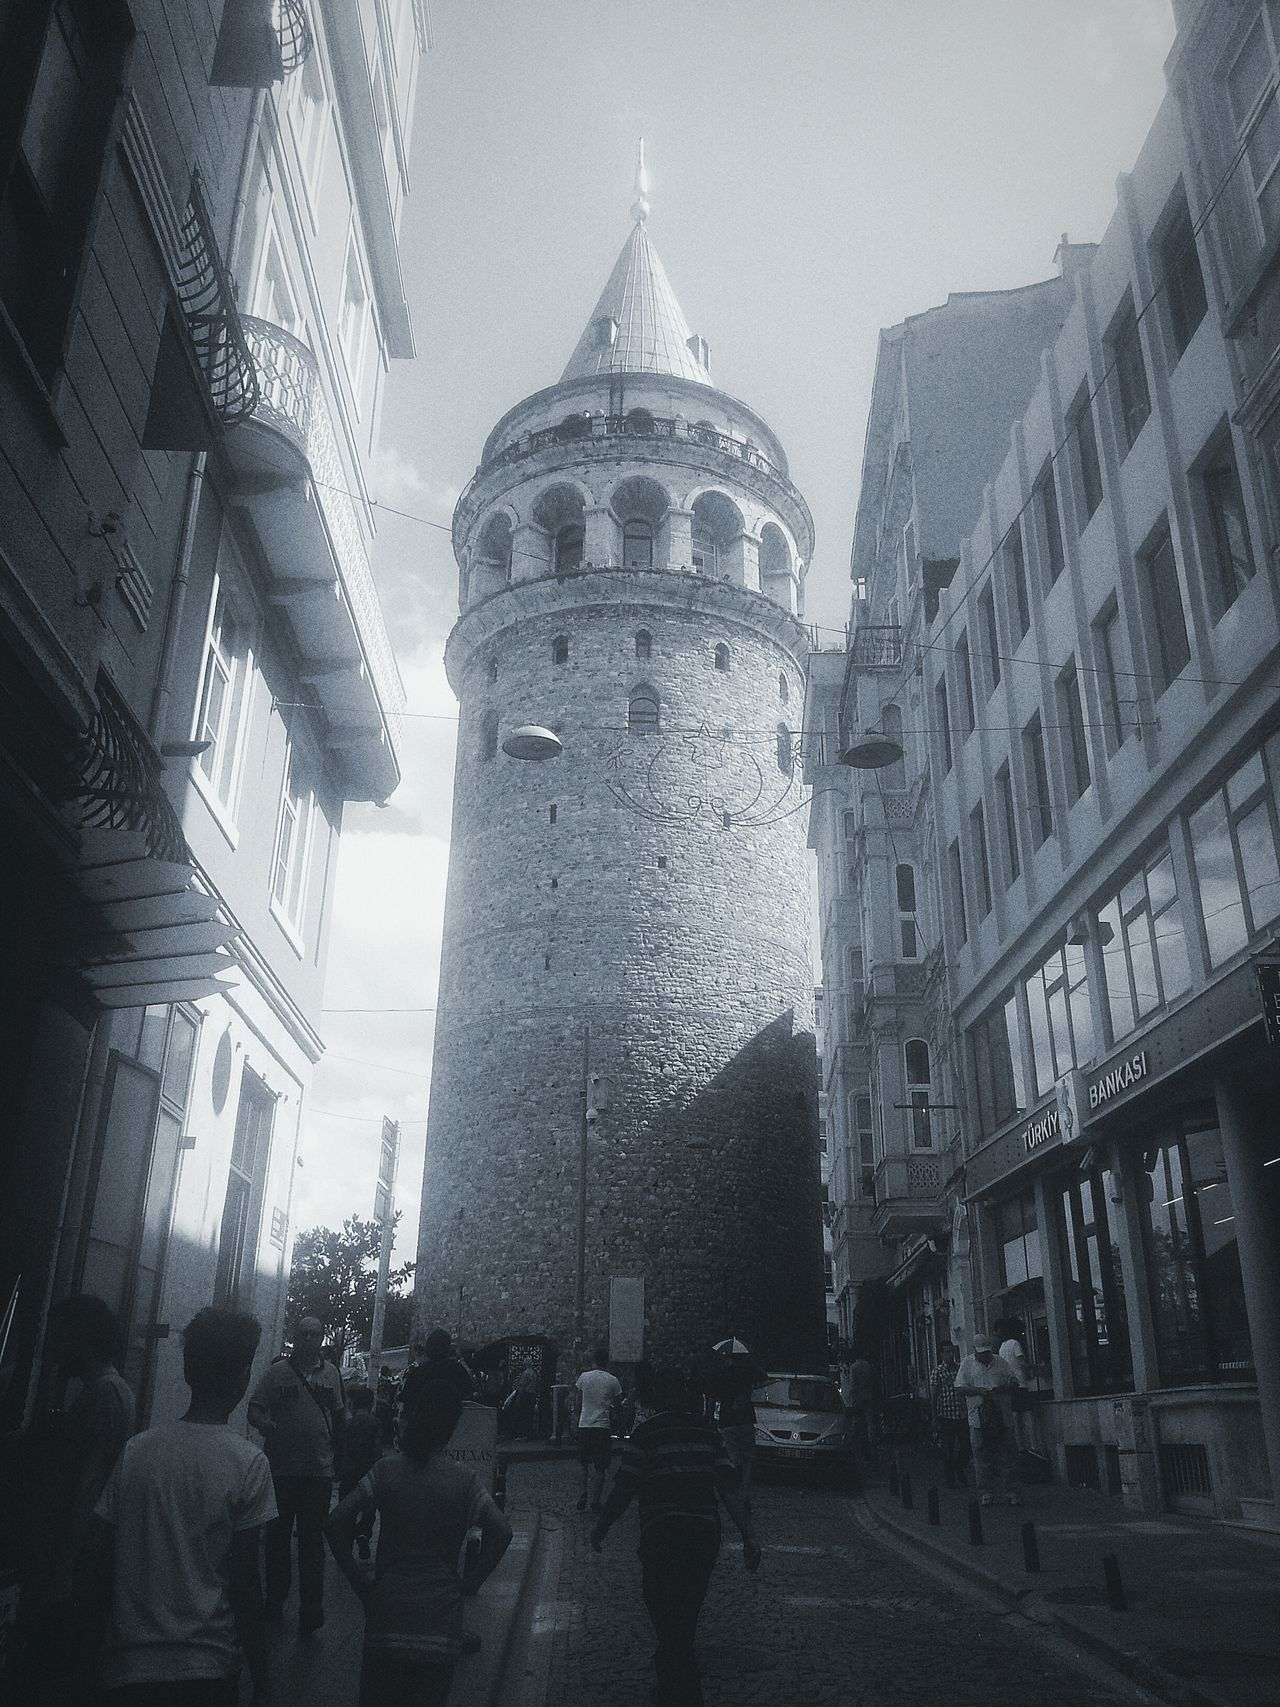 B&w Street Photography Galata Tower Streets MyPhotography Traveling Luxury Istanbul Turkey Woman Eye Kitapkokusu High Lights Kriselfy Photograpy Hello World LG G3photography Istanbuldayasam HelloEyeEm Work Director EyeEm Best Shots Mekan Lifestyles